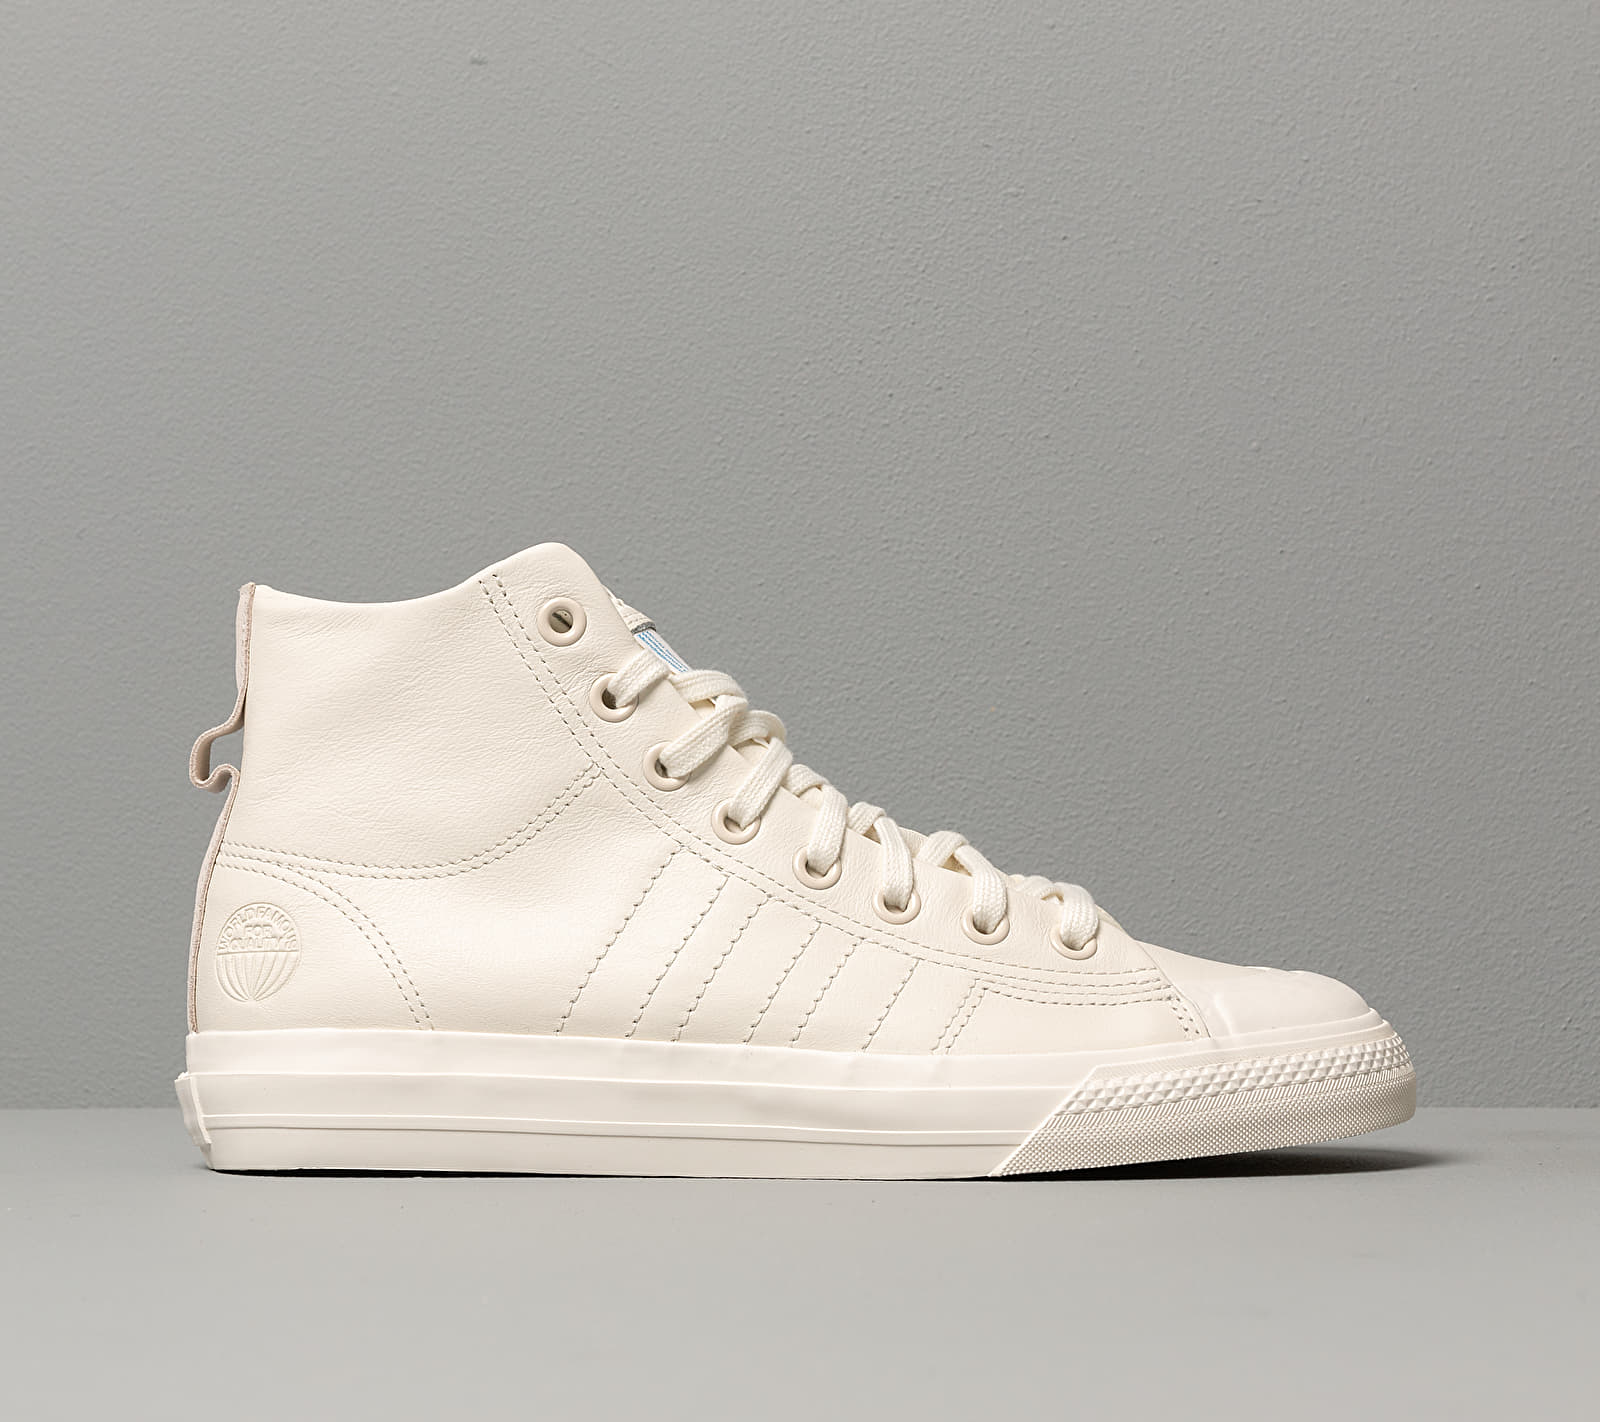 adidas Nizza Hi Rf Off White/ Off White/ Off White, Brown